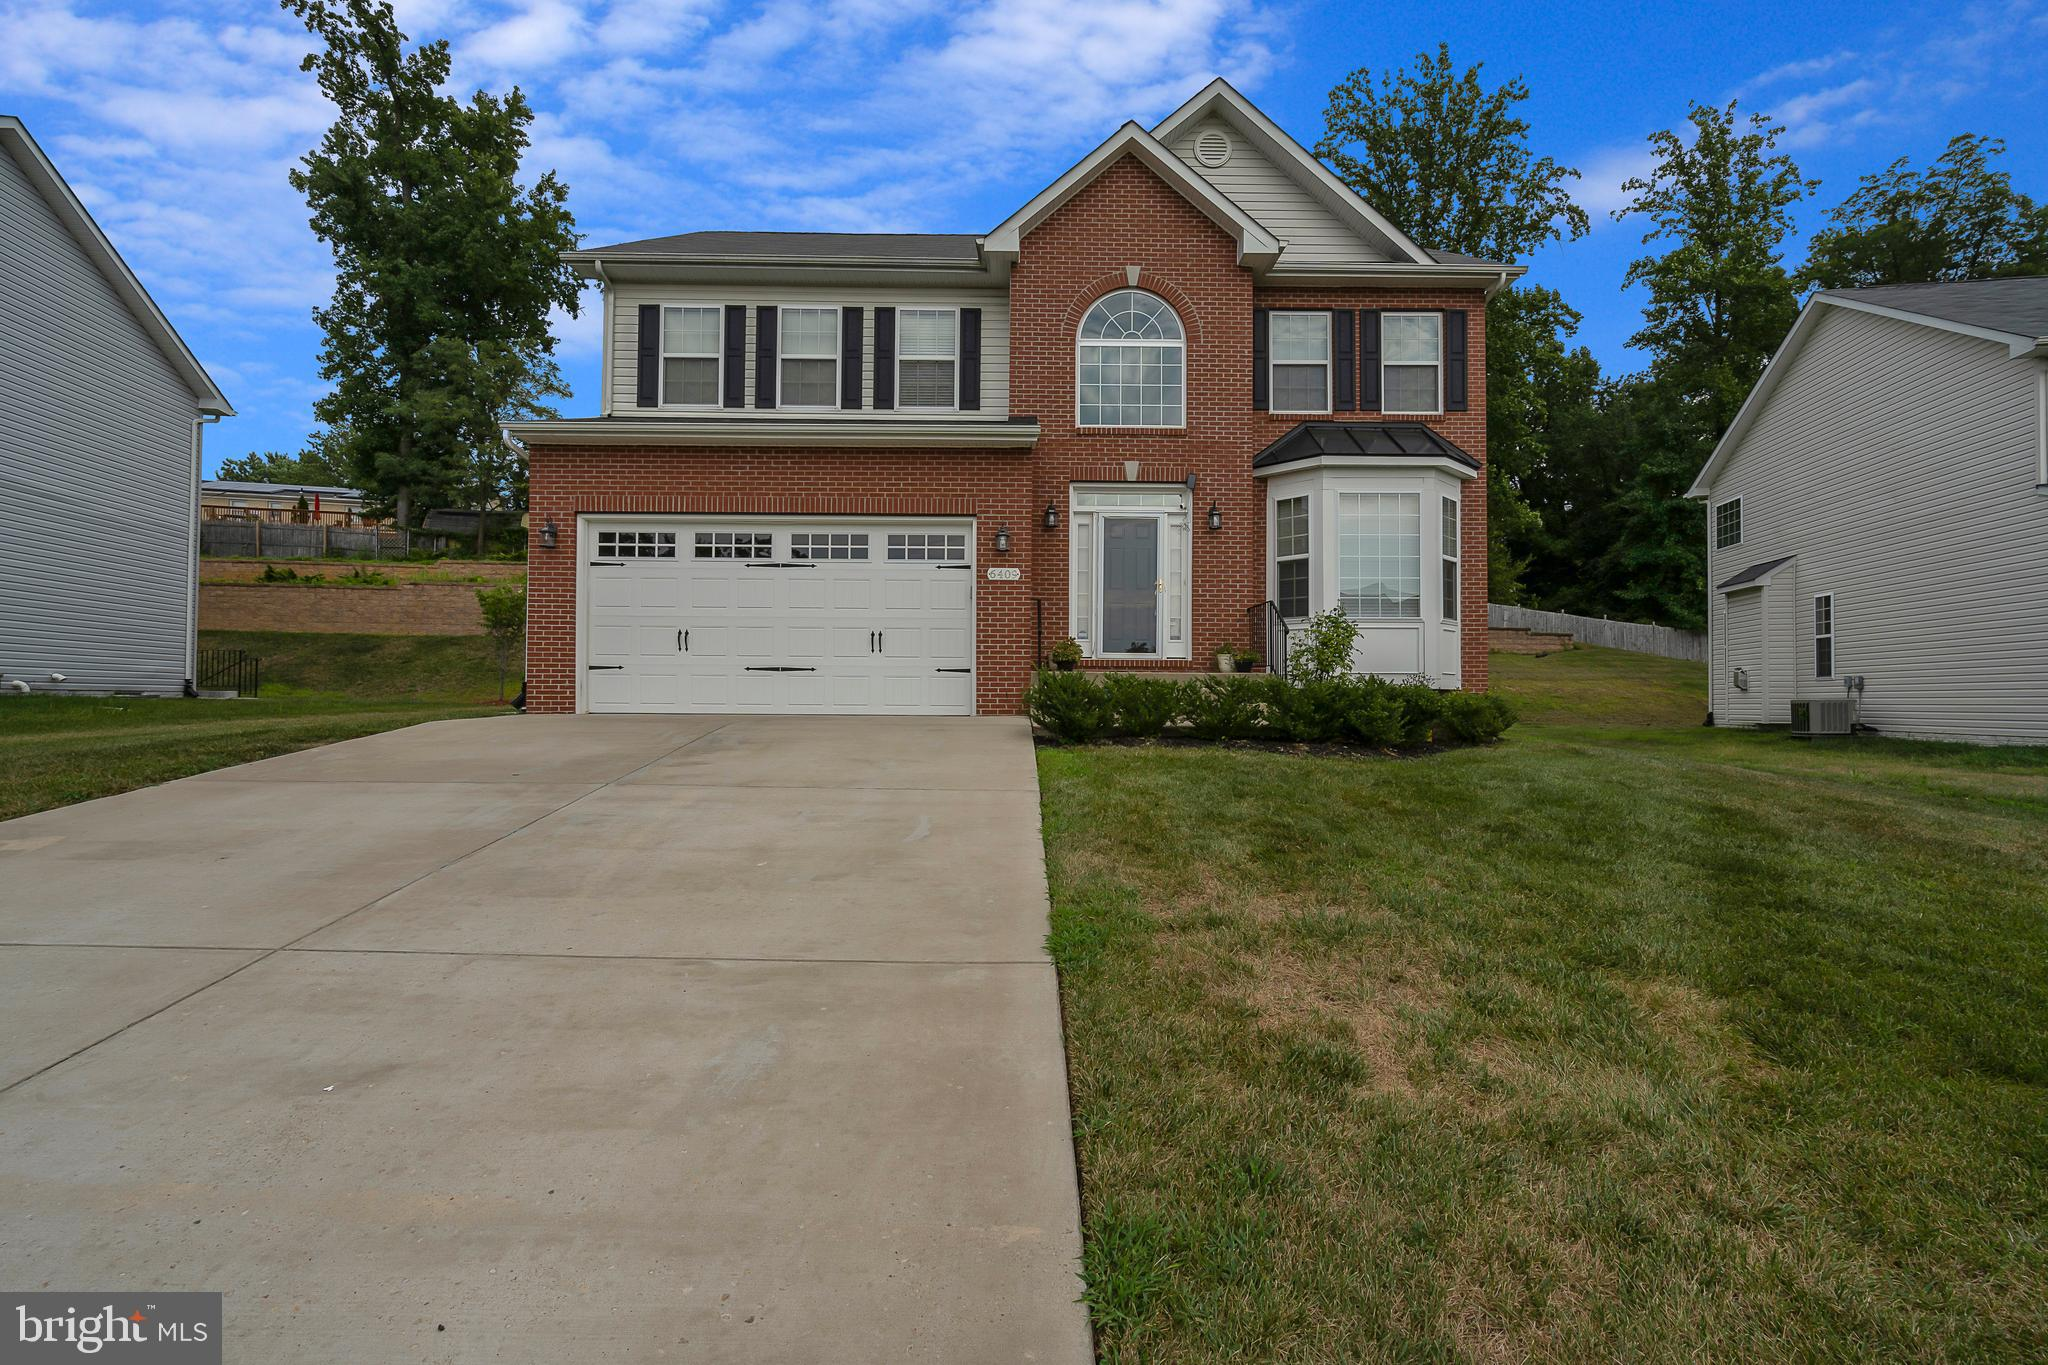 6409 NORTHAM ROAD, TEMPLE HILLS, MD 20748